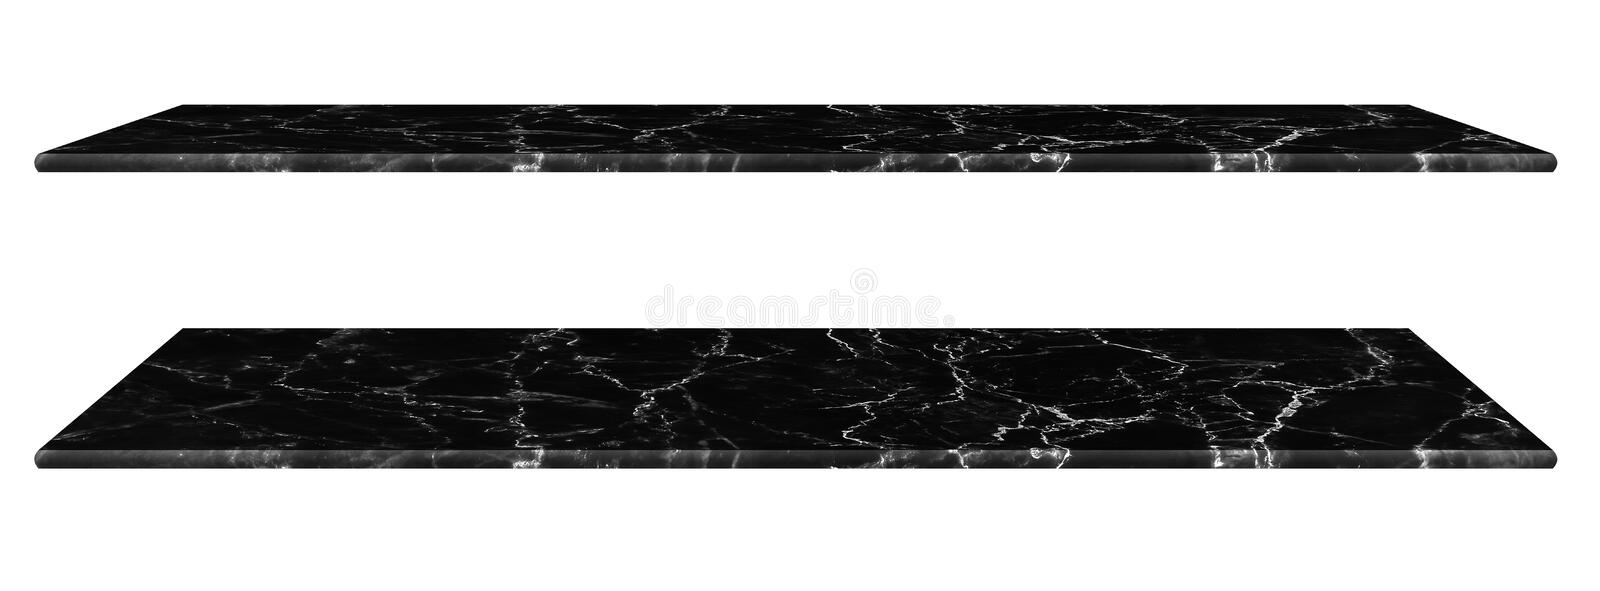 Marble table, counter top Black surface, Stone slab for display products isolated on white background have clipping path royalty free stock image